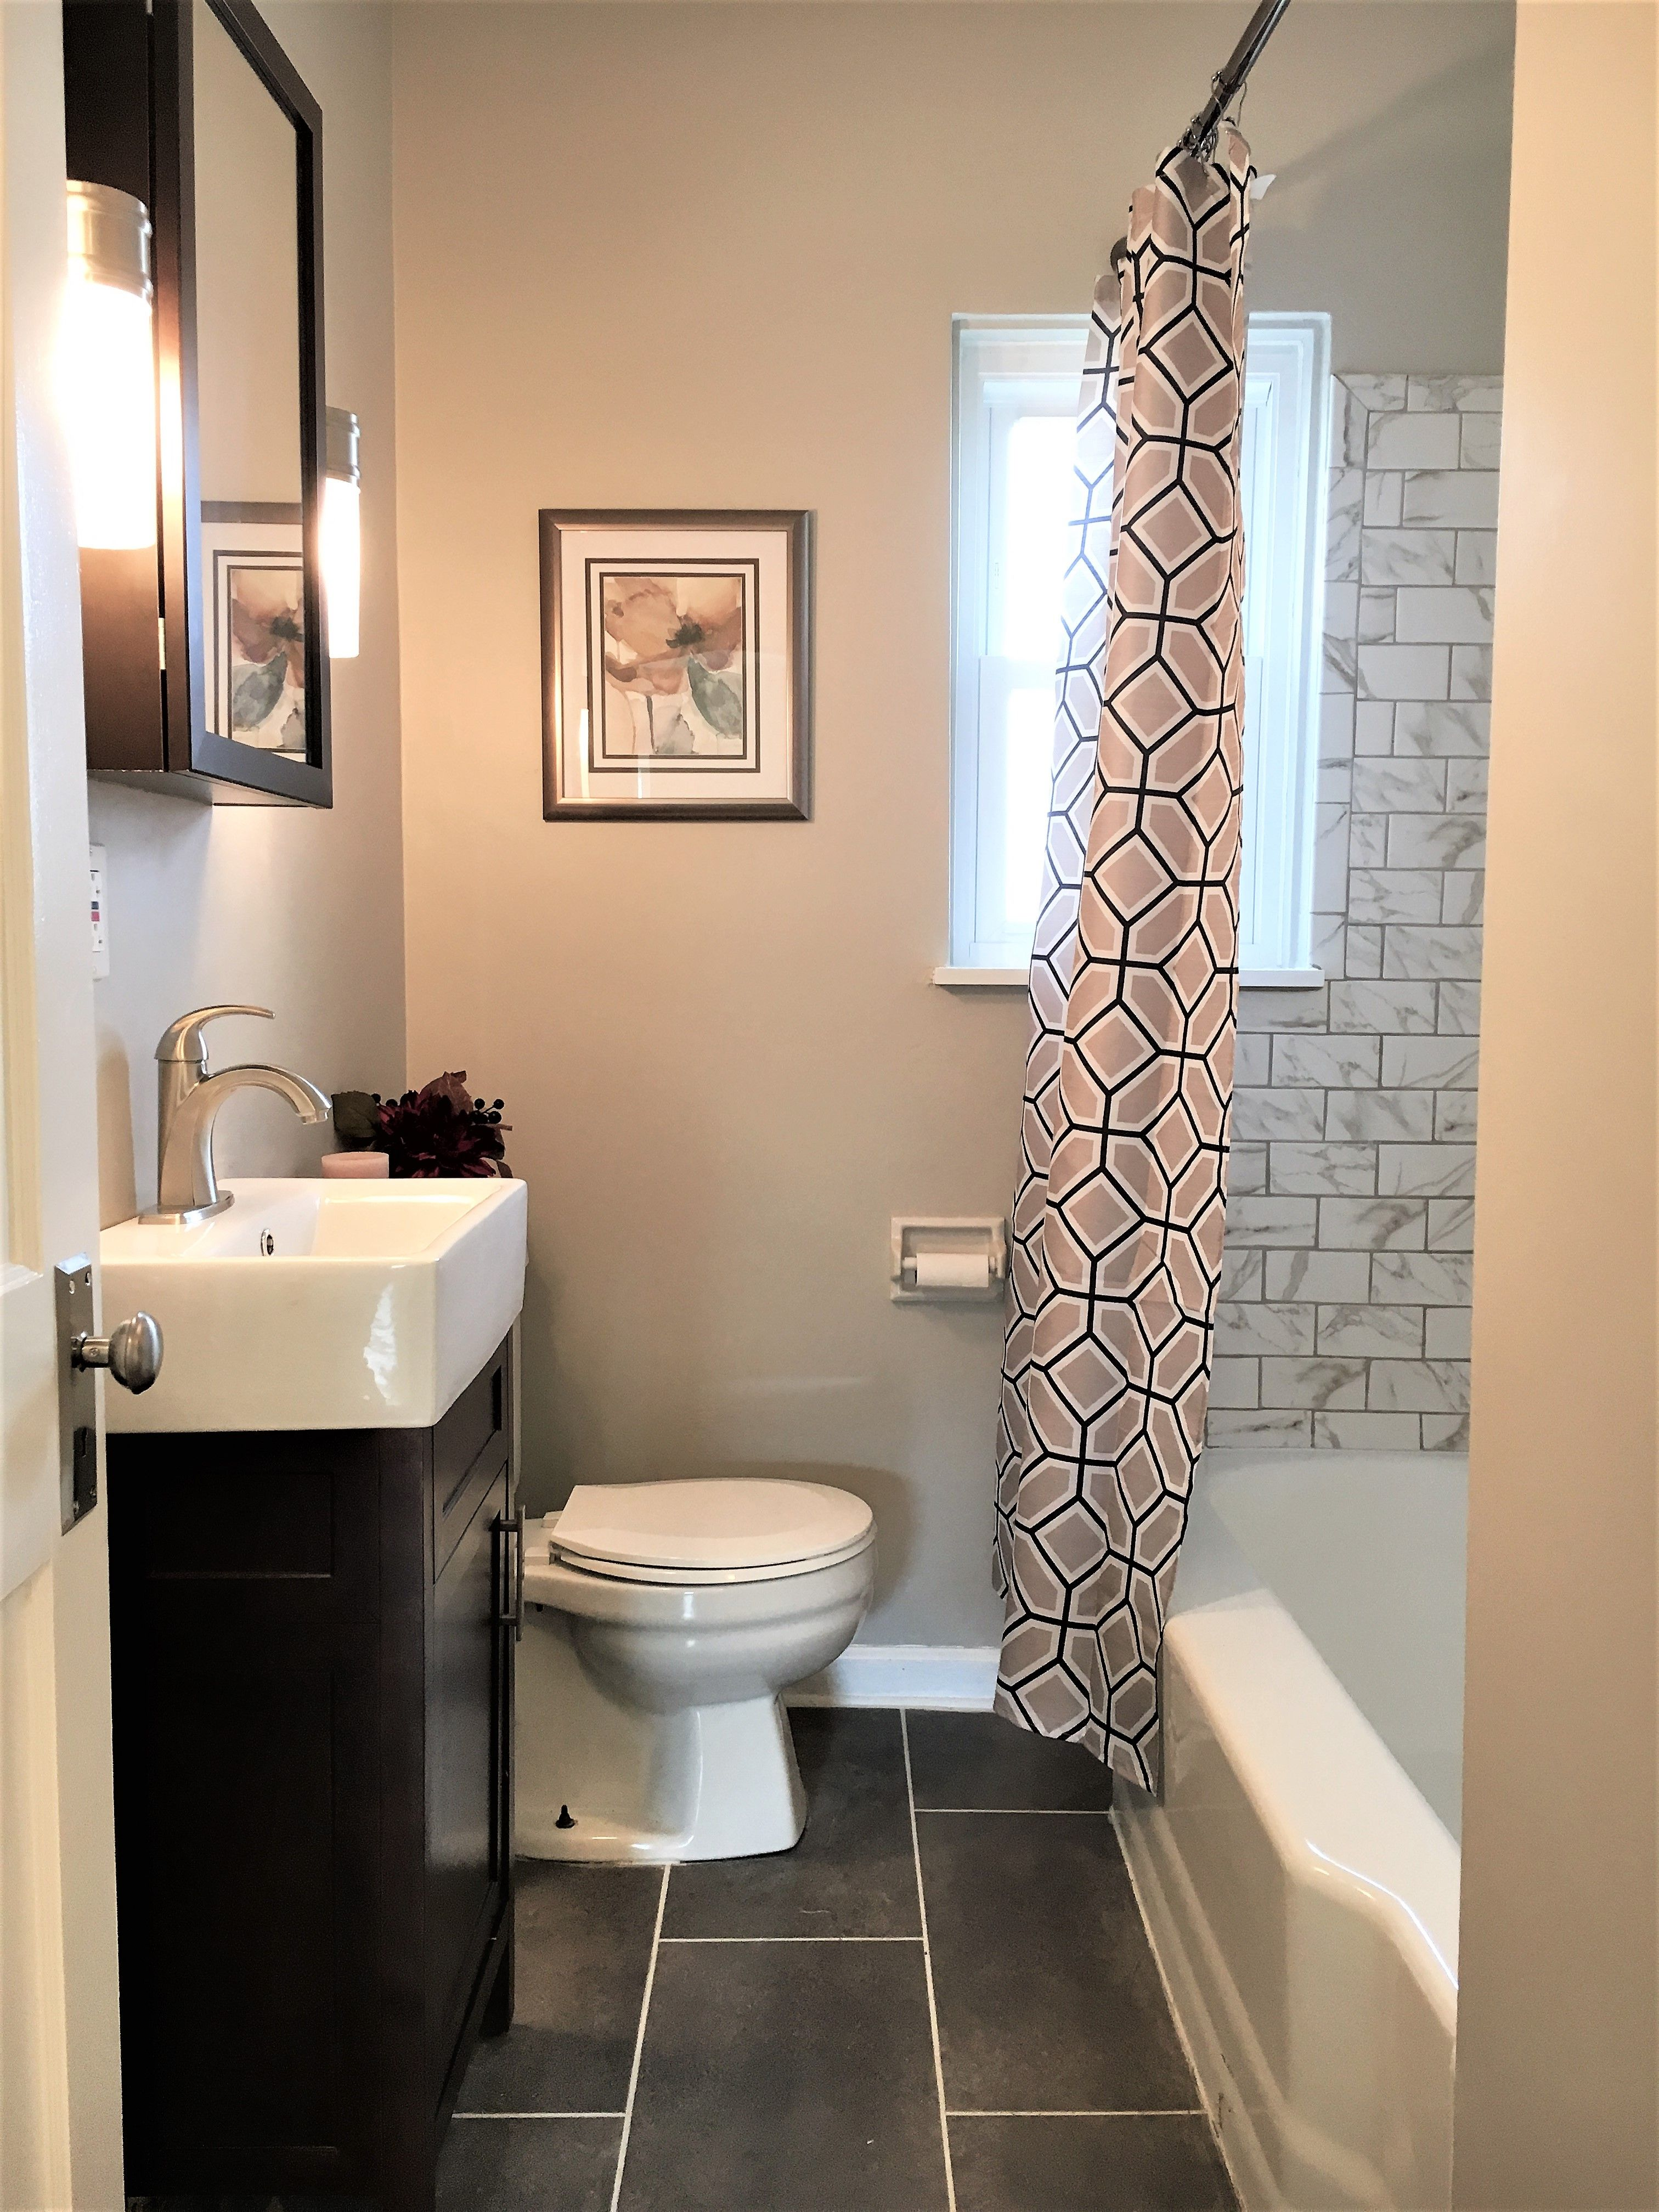 Beau Contemporary Full Bath Remodel By BlankSpace LLC, Pittsburgh PA.  Marble Look Porcelain Subway Tile Tub/Shower Surround On Refinished Cast  Iron Tub; ...